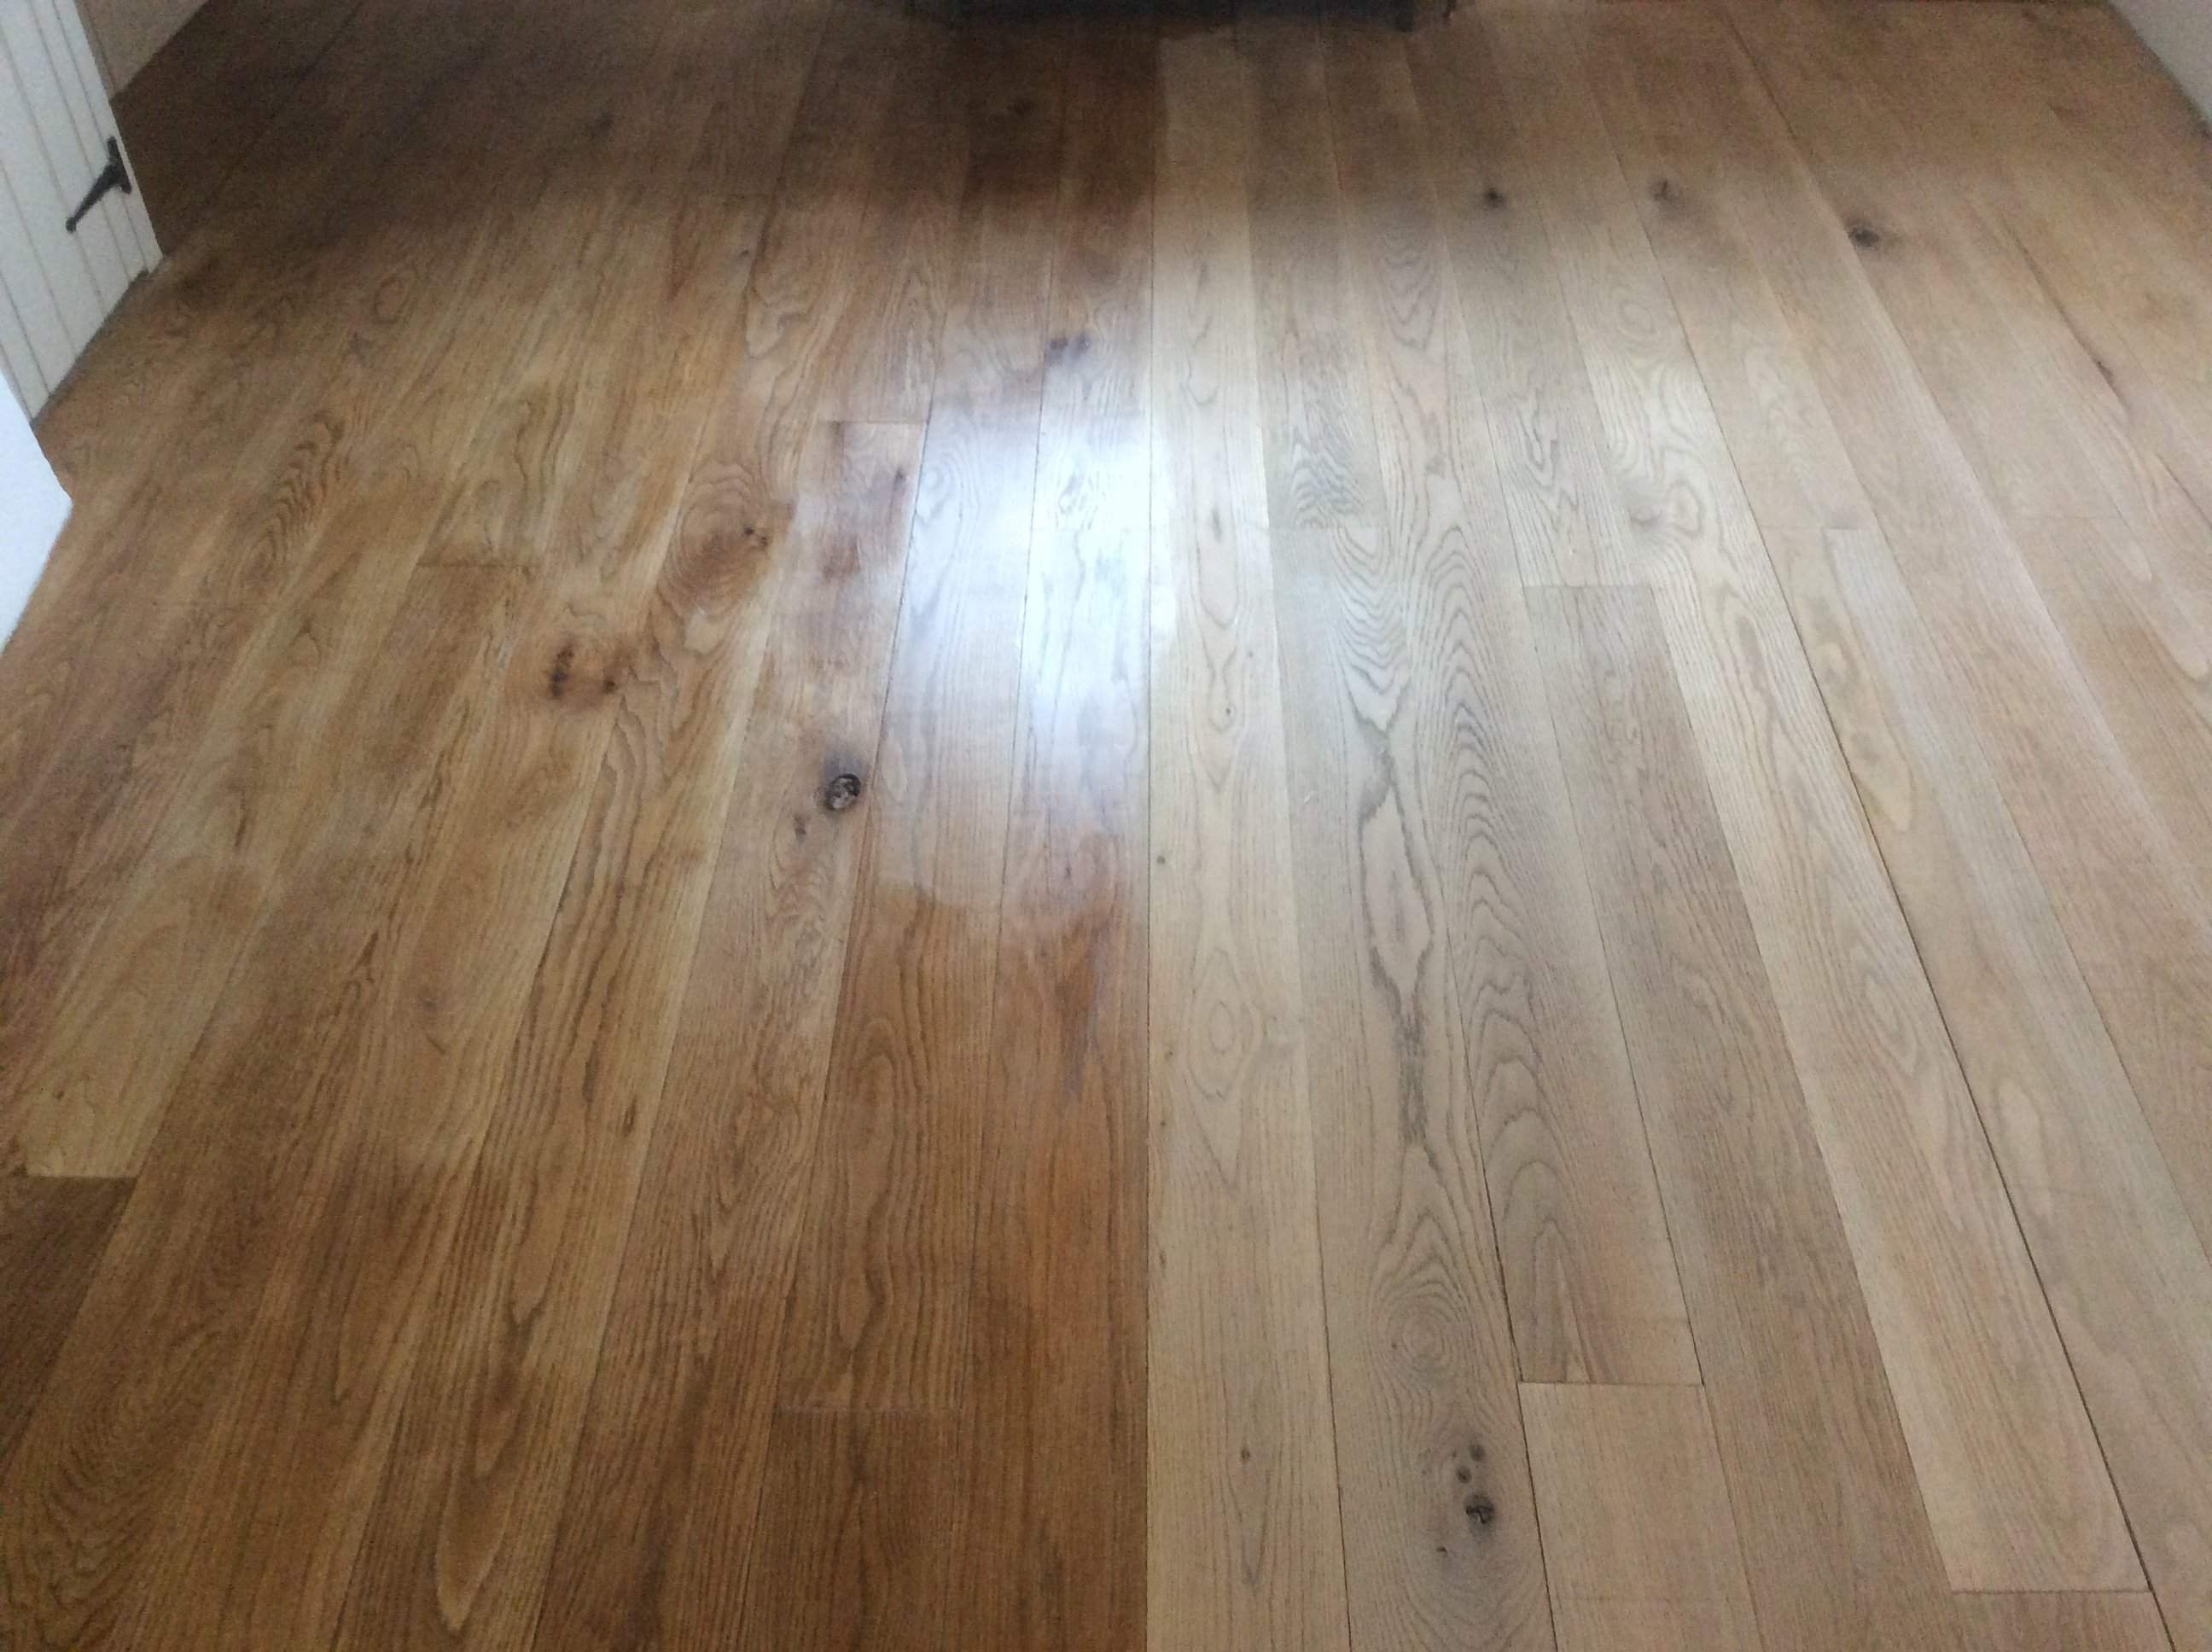 pine floor boards sanded and restored